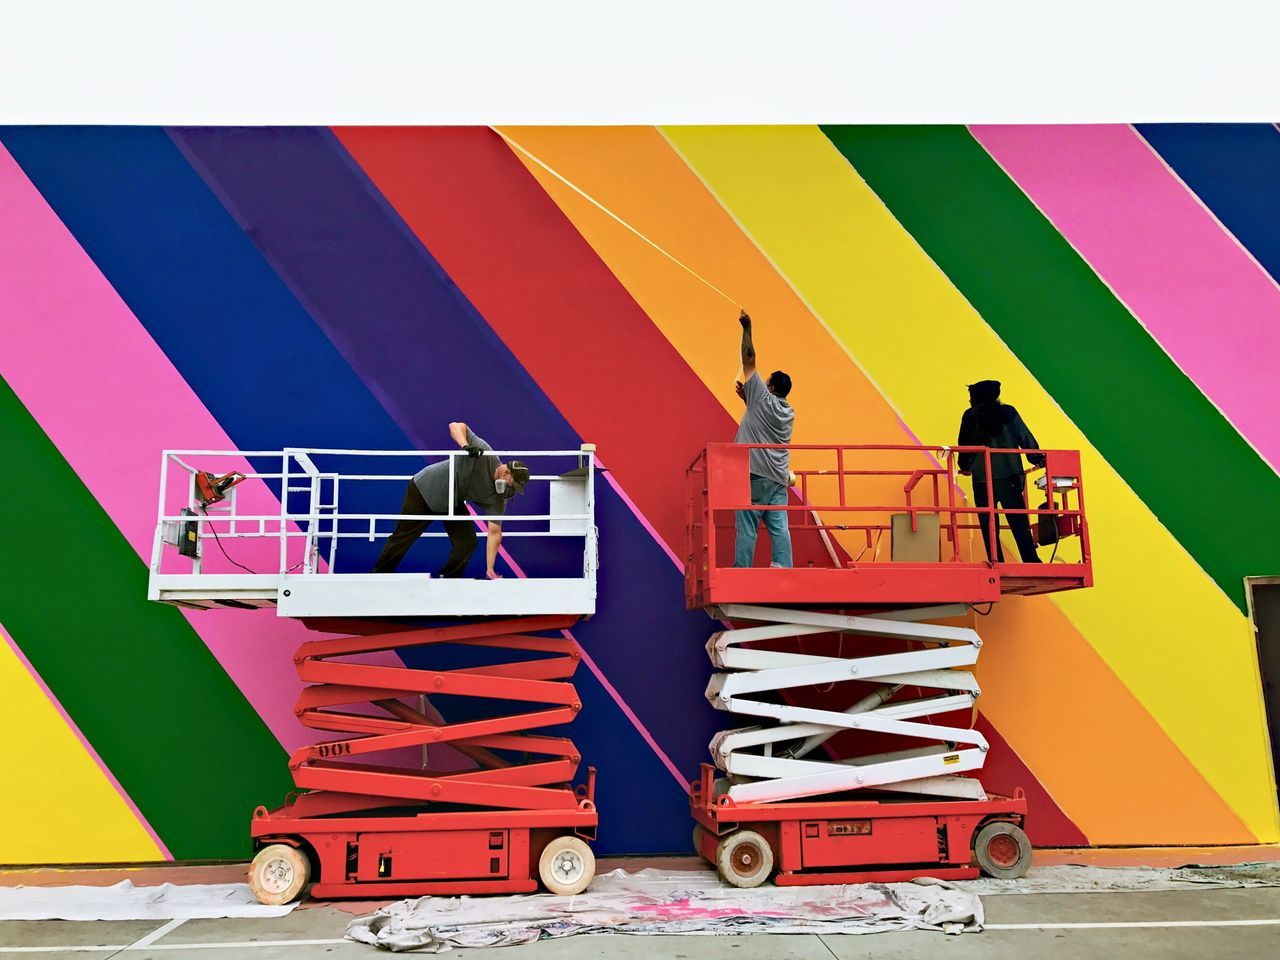 Outdoors Rainbow Wall - Building Feature Paul Smith Painting Street Photography Men Painting Scissors Lift Multi Colored